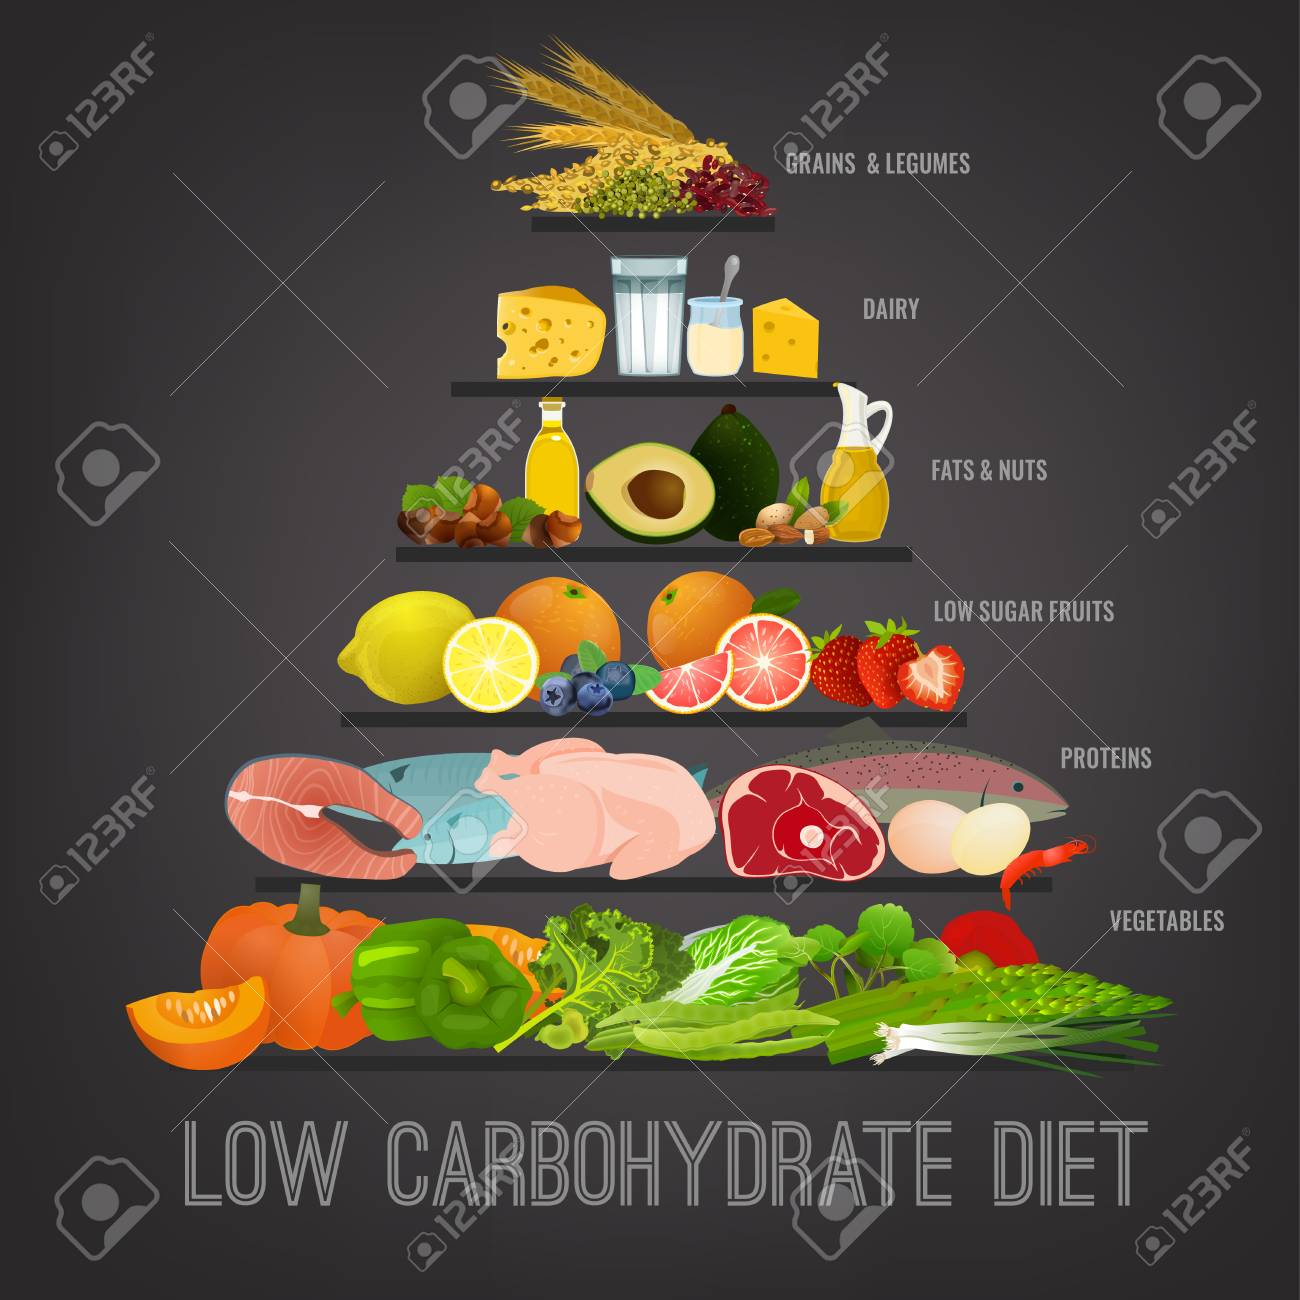 Low carbohydrate diet poster. Healthy eating concept. - 94413953